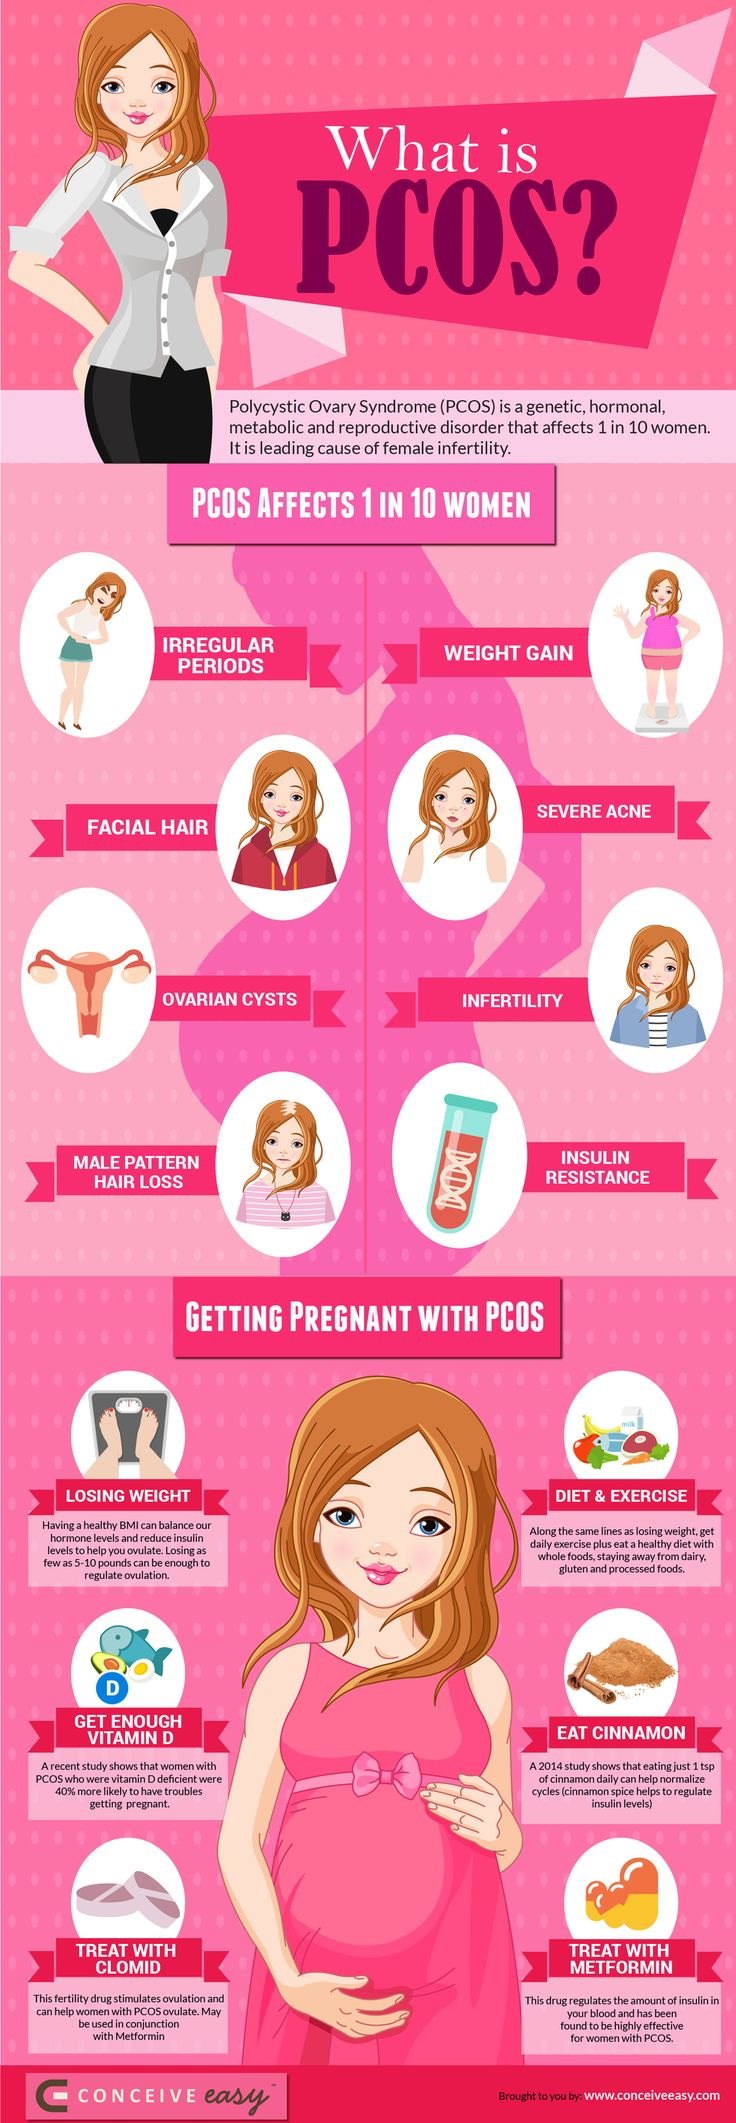 What is PCOS? | How to Get Pregnant with PCOS Infographic